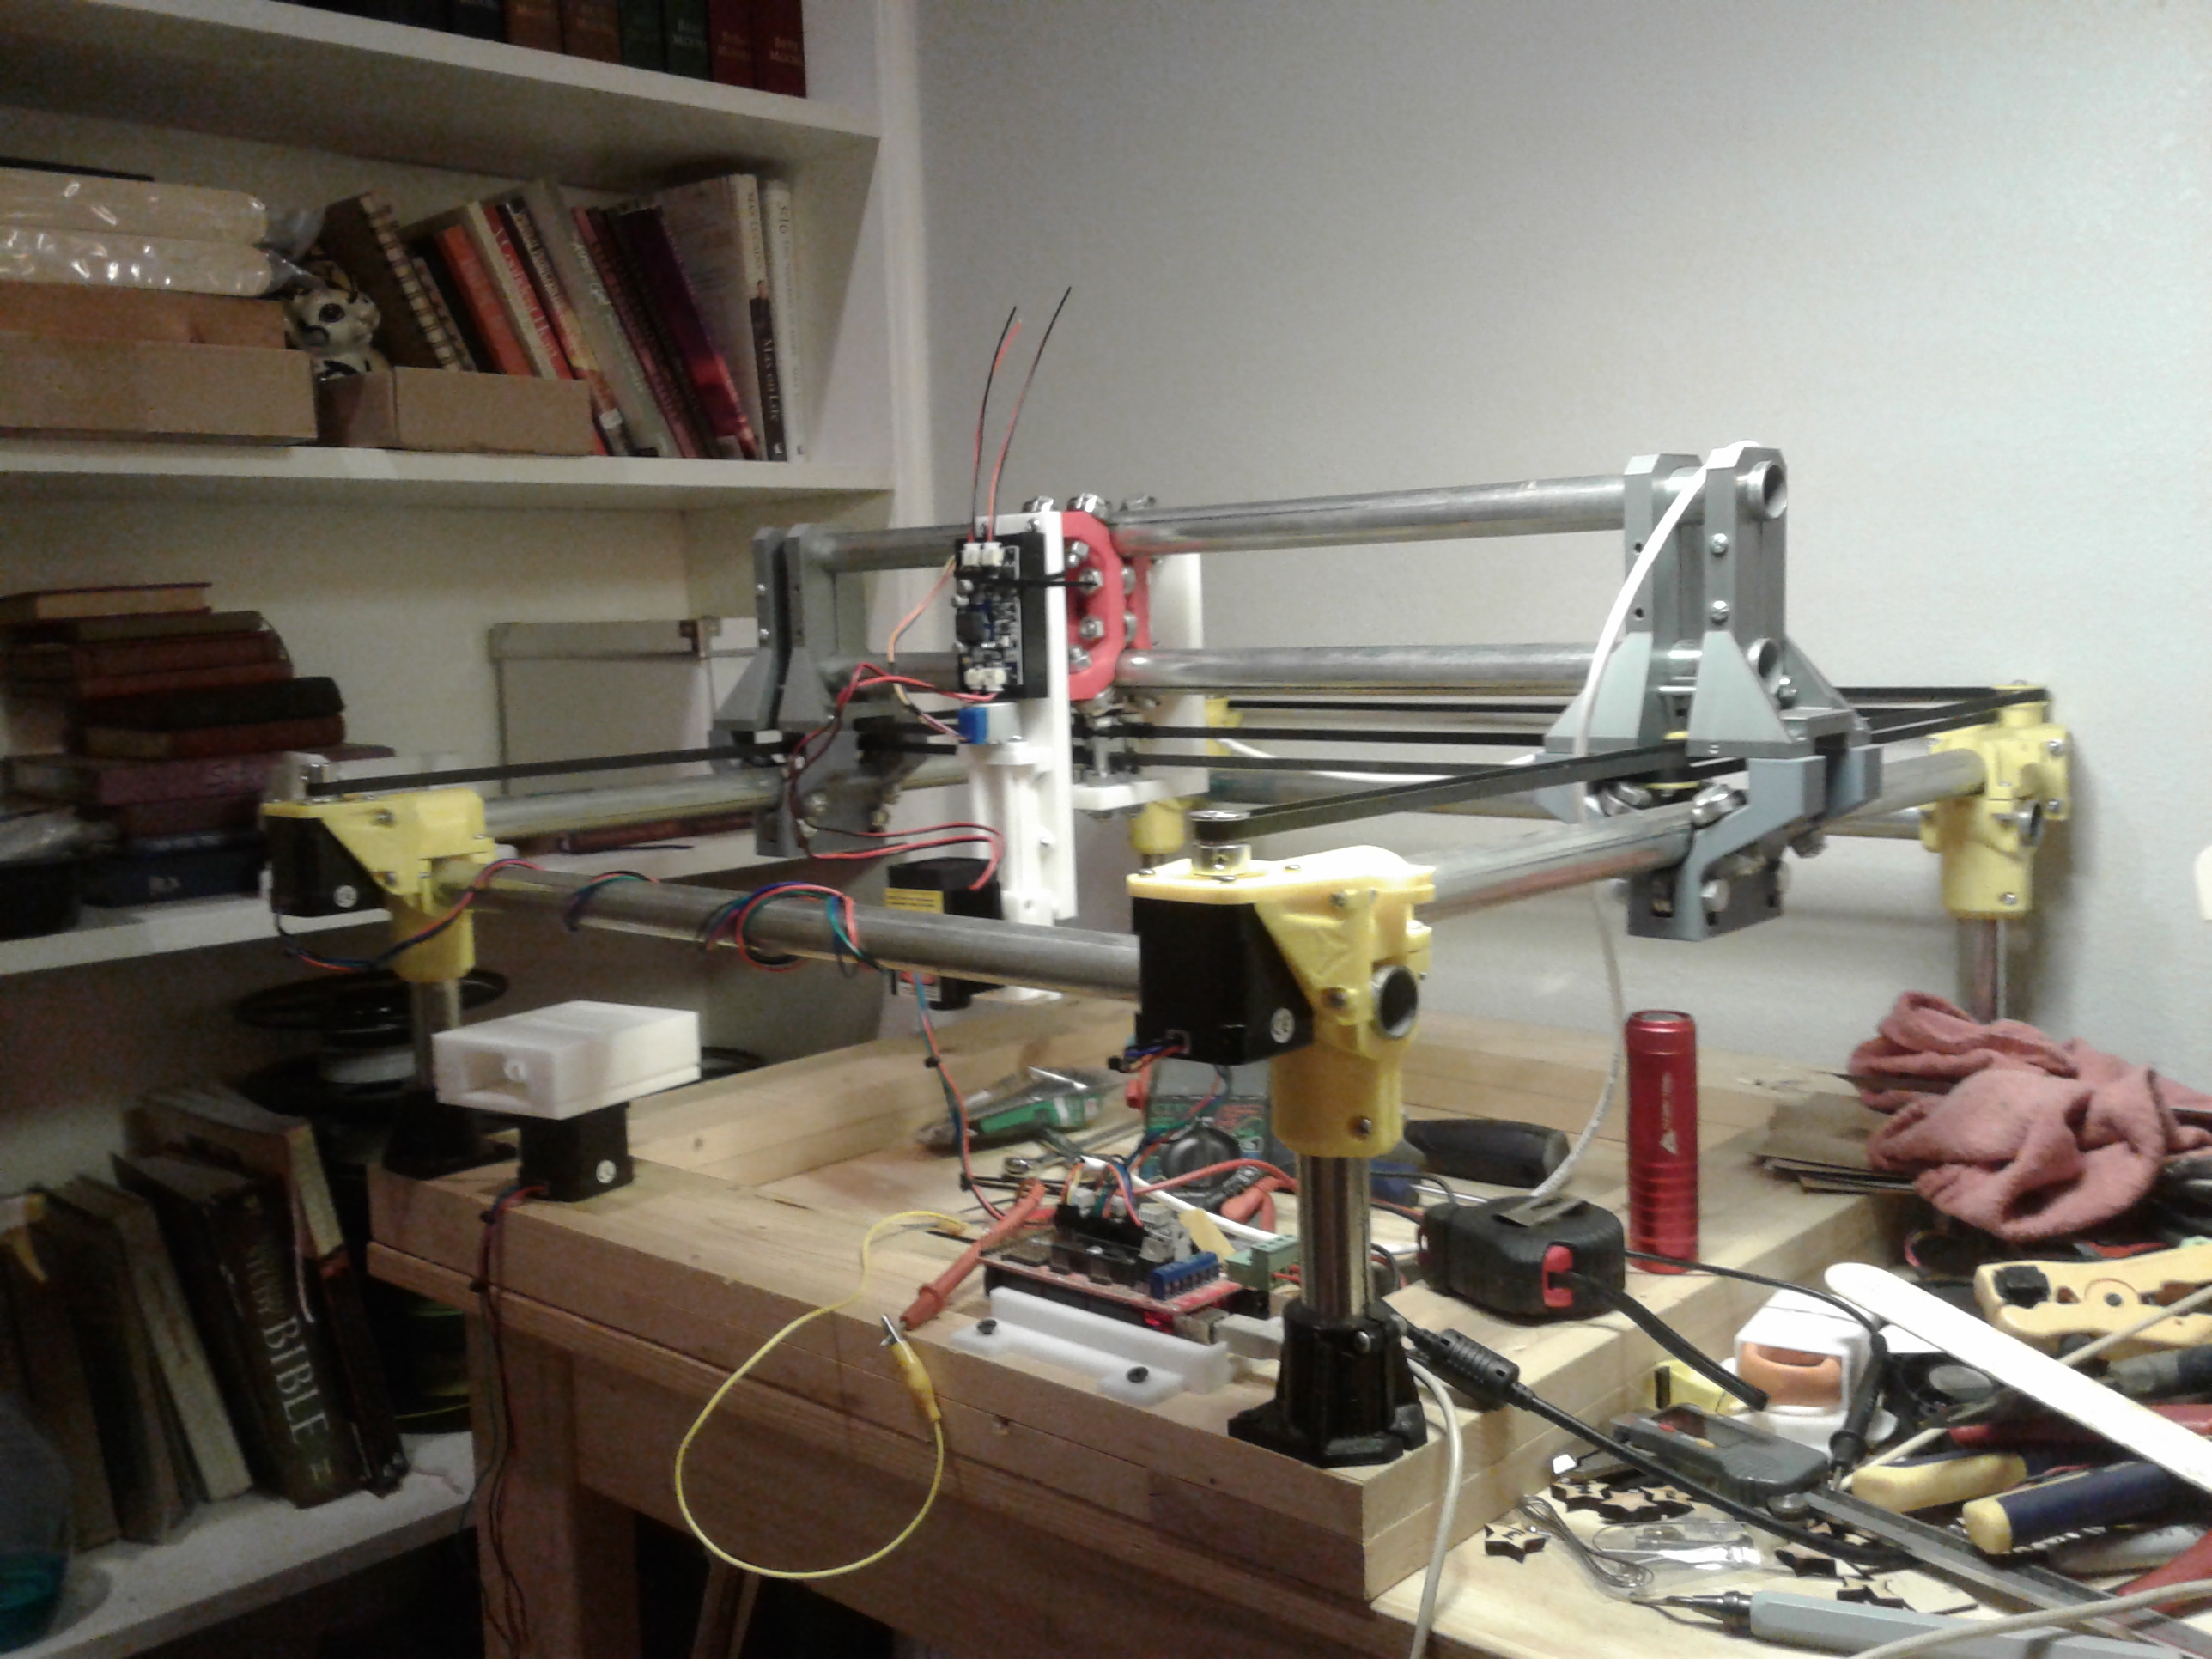 MPCNC-inspired CoreXY laser engraver | FliteTest Forum